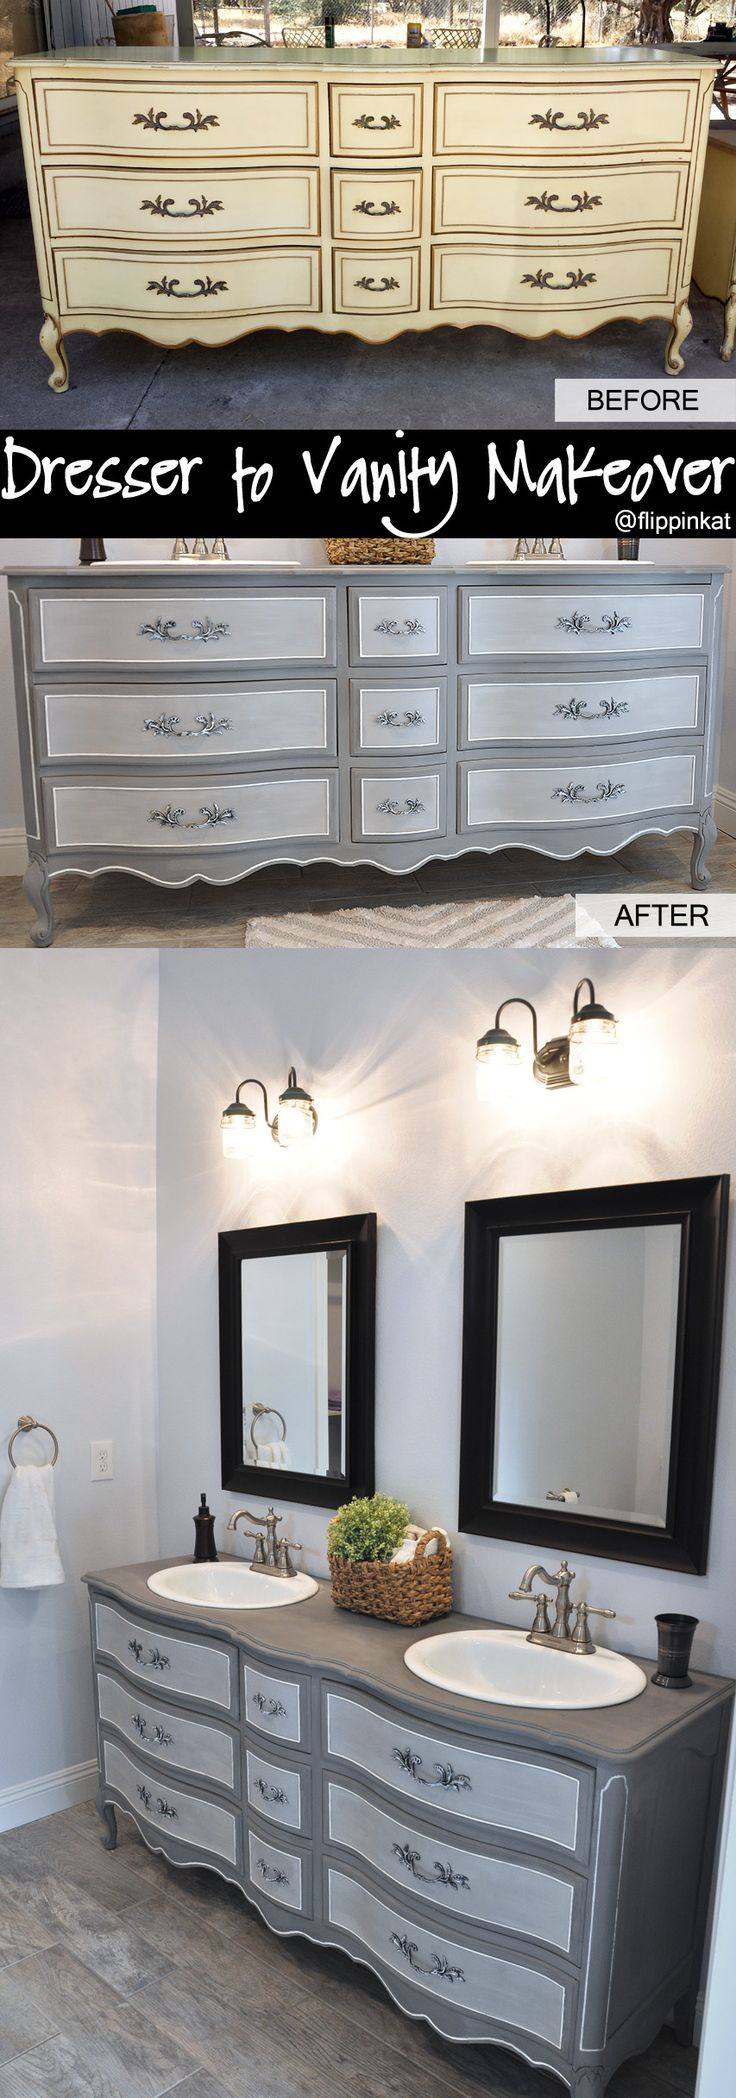 Dresser to vanity and bathroom renovation. Got an old French Provincial style dresser off Craigslist and gave it a makeover! I love the before and after.                                                                                                                                                                                 More